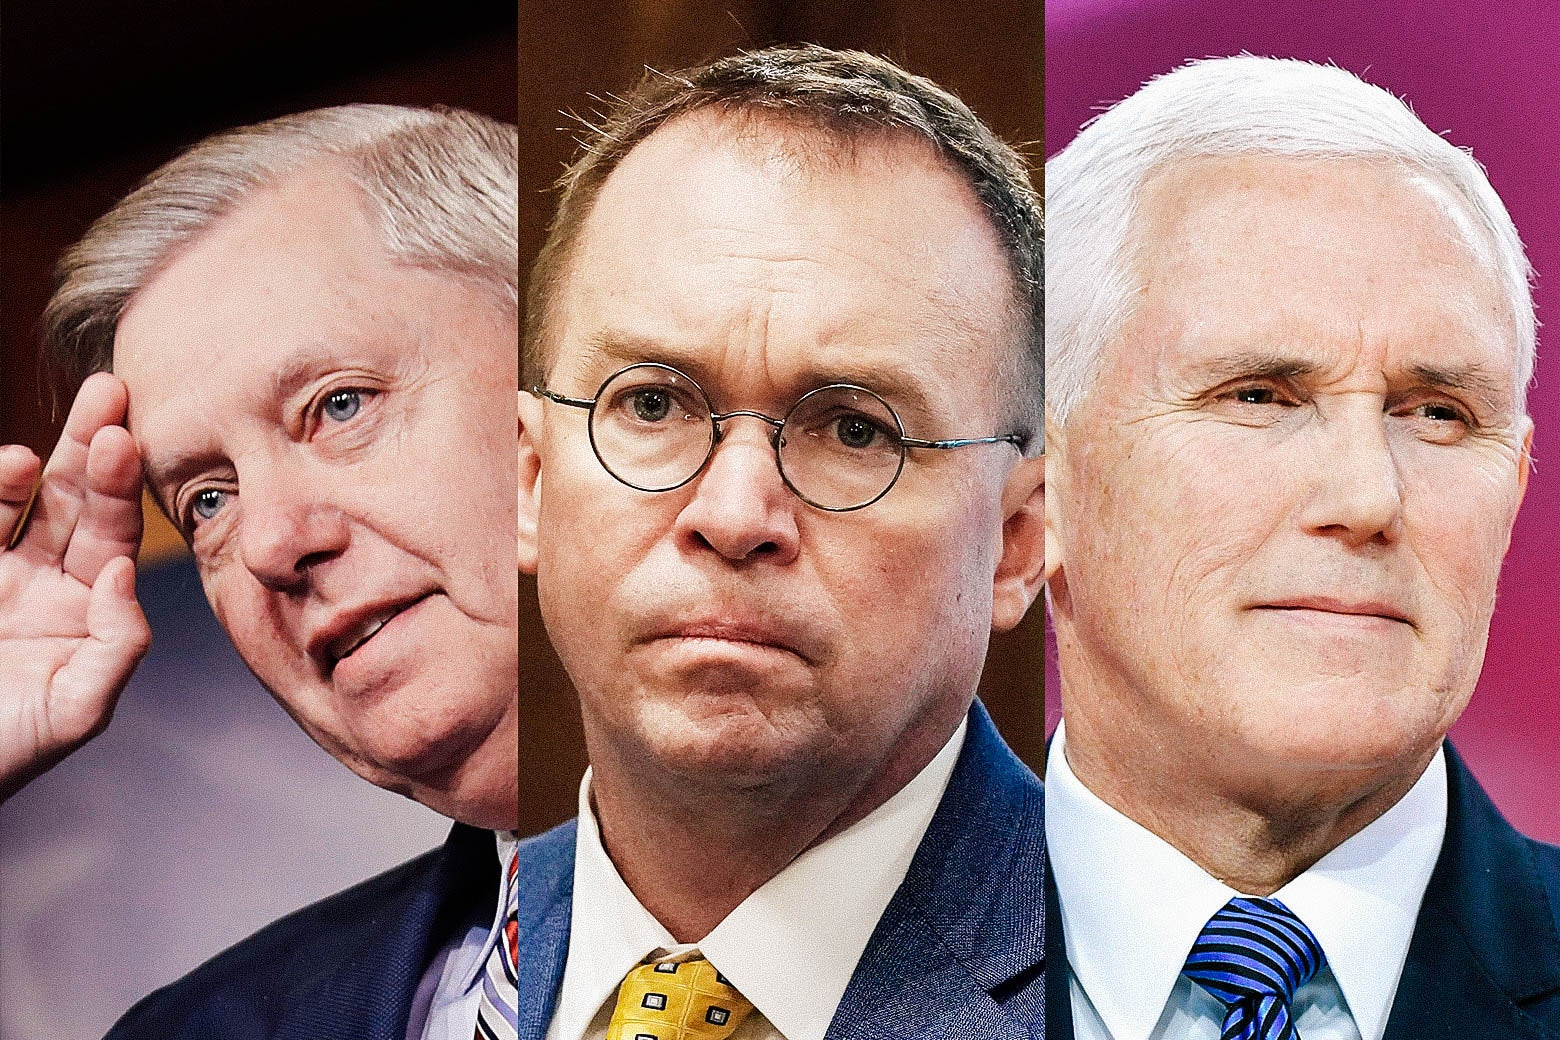 Lindsey Graham, Mick Mulvaney, and Mike Pence.